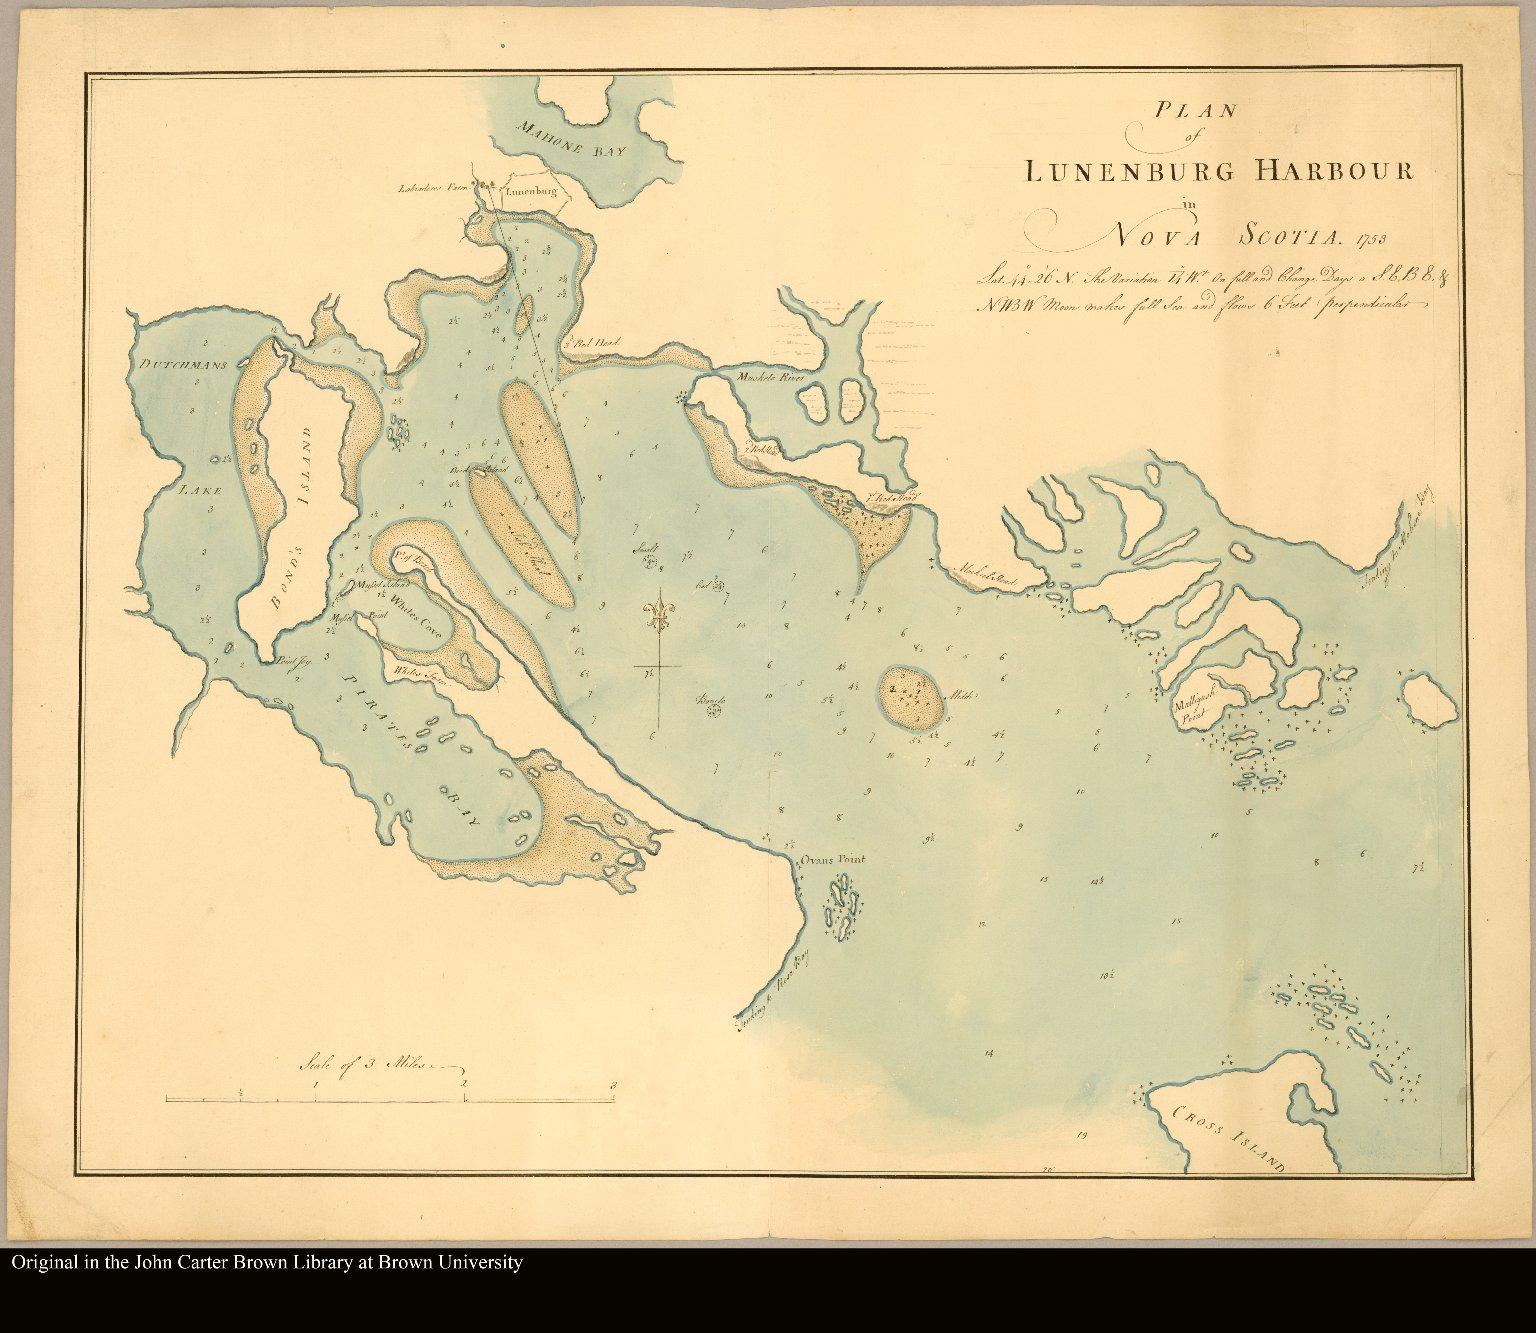 Plan of Lunenburg Harbour in Nova Scotia 1753. Lat. 44°. 26'N. The variation 14° Wst. On full and change days a S.E.B.E. & NWBW moon makes full sea and flows 6 feet perpendicular